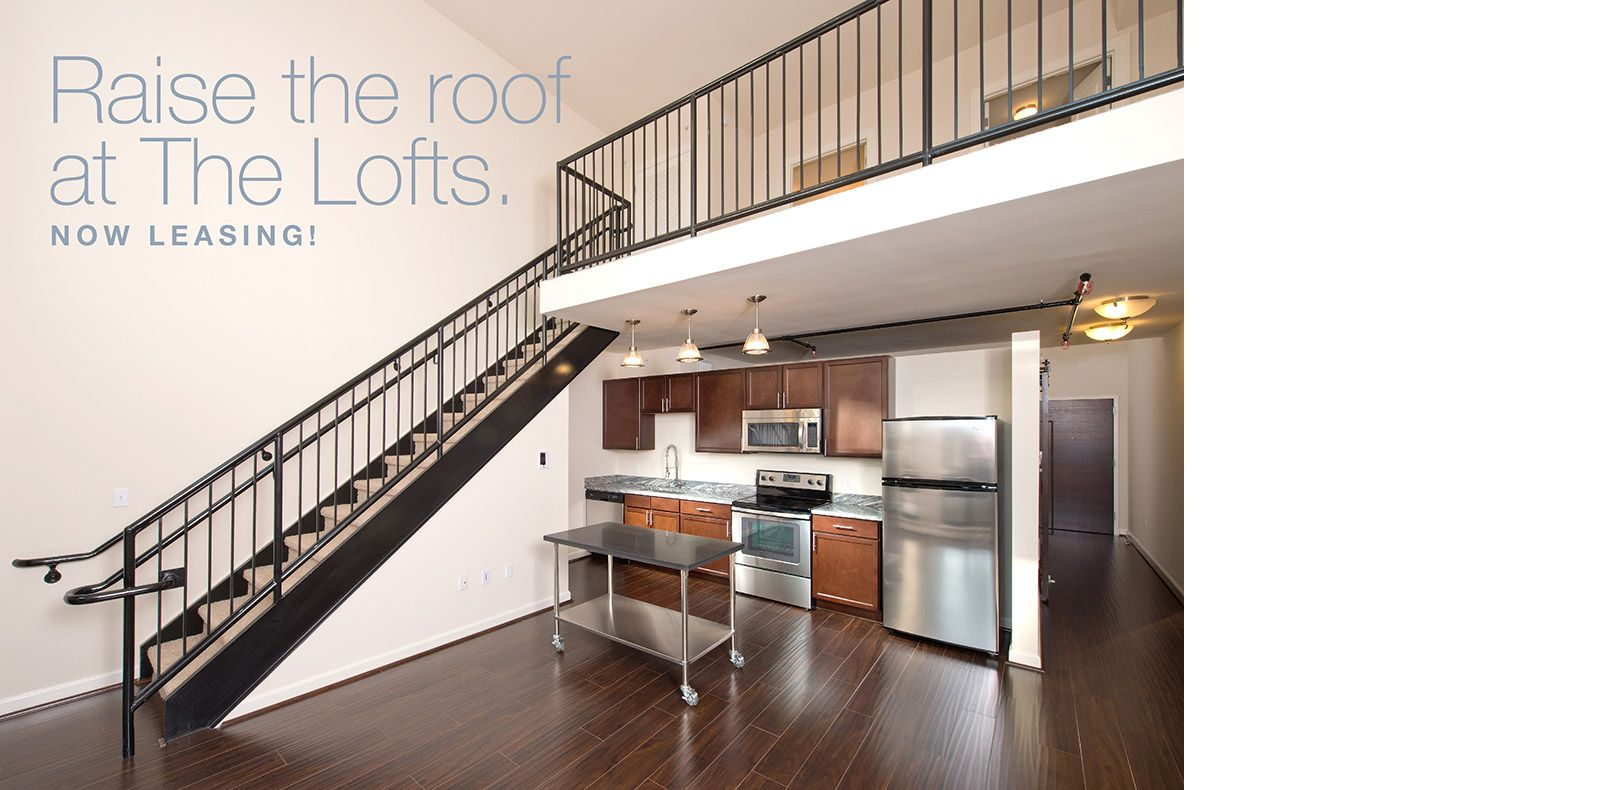 The Kitchens At The Lofts At Halstead Square Feature Imported Granite  Countertops, Custom Designed Moveable Islands, Energy Star Rated Whirlpool®  Stainless ...